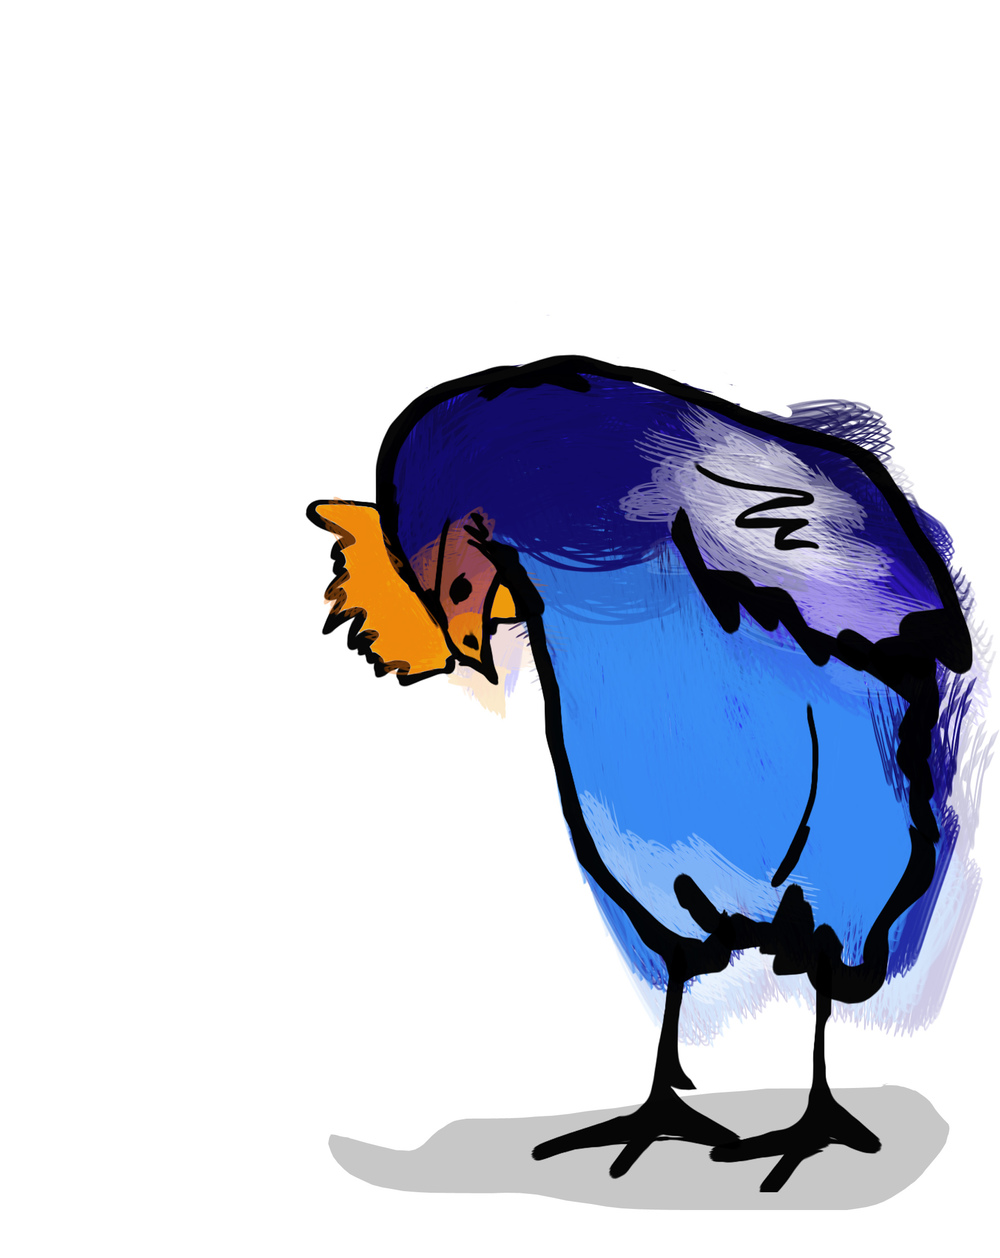 The silly argument in my first book 'I think I saw a Pukeko' is about whether a kid saw a Pukeko or a blue chicken...